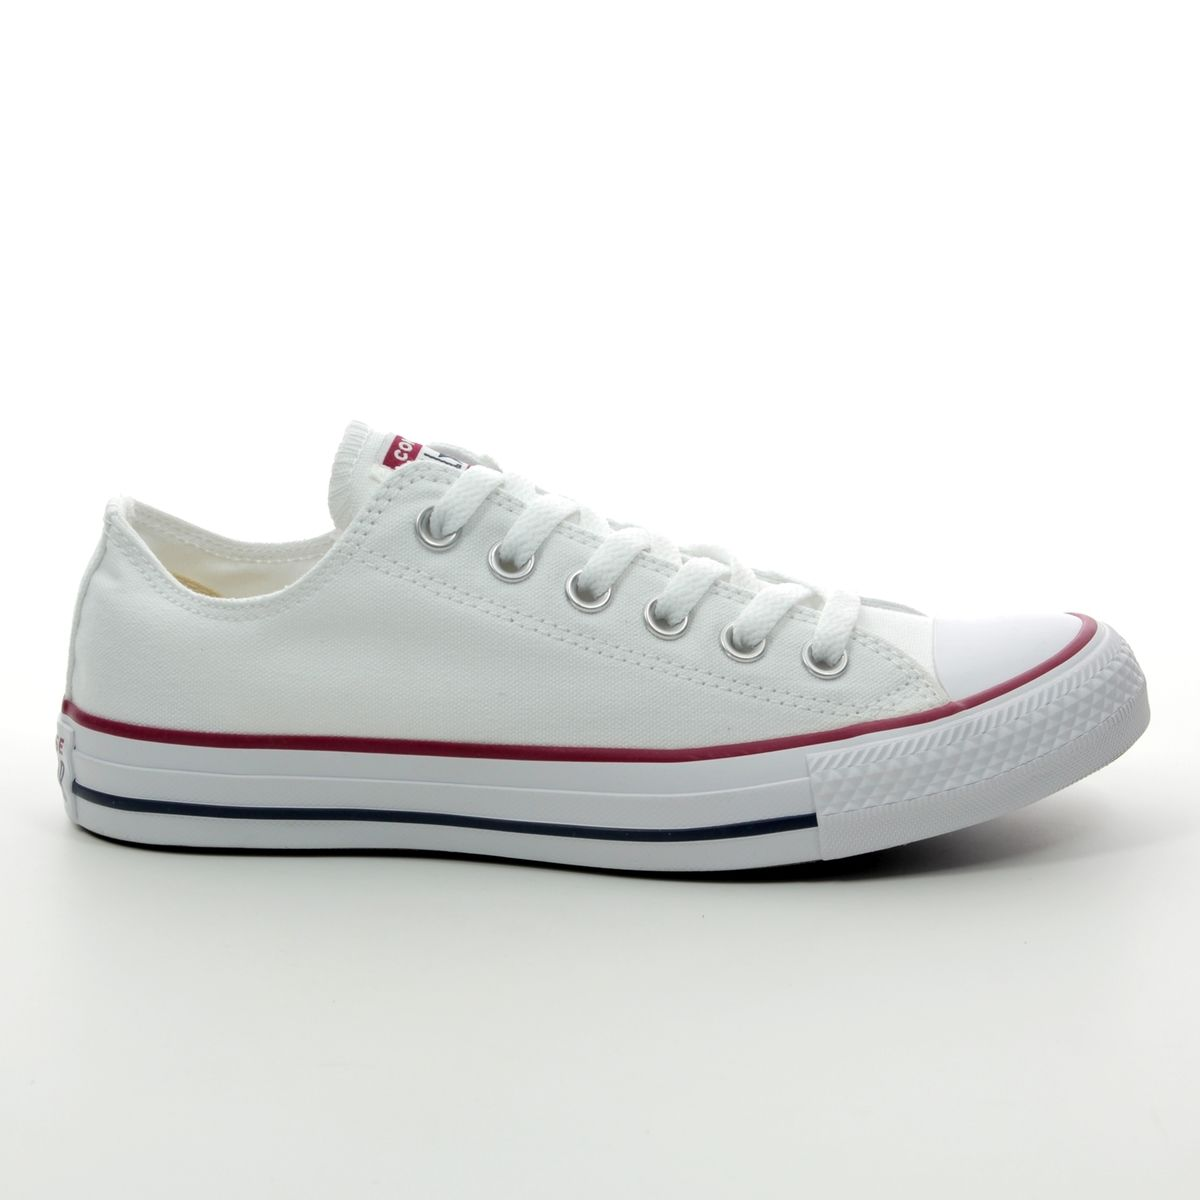 2a550818183d Converse Trainers - White - M7652C All Star Ox Classic